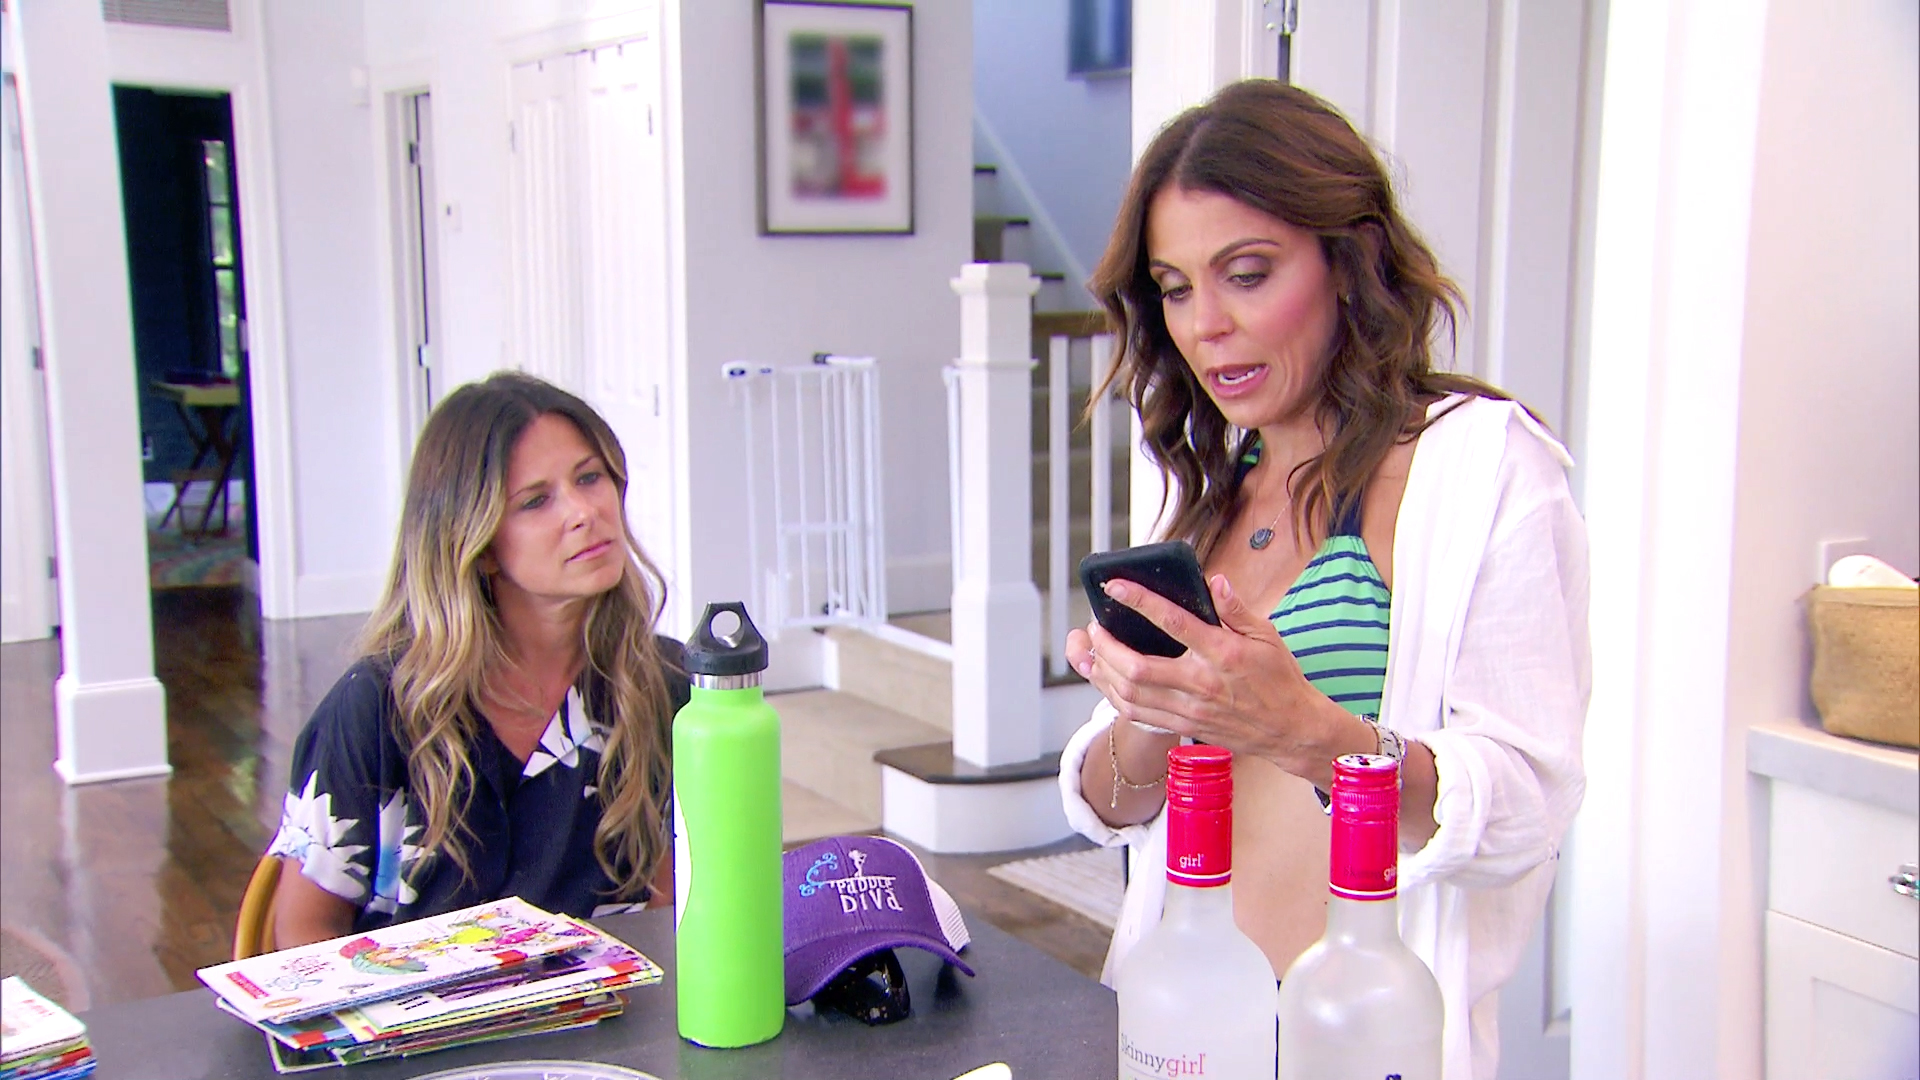 190305_3917407_bethenny_frankel_is_still_reeling_from_denni.jpg